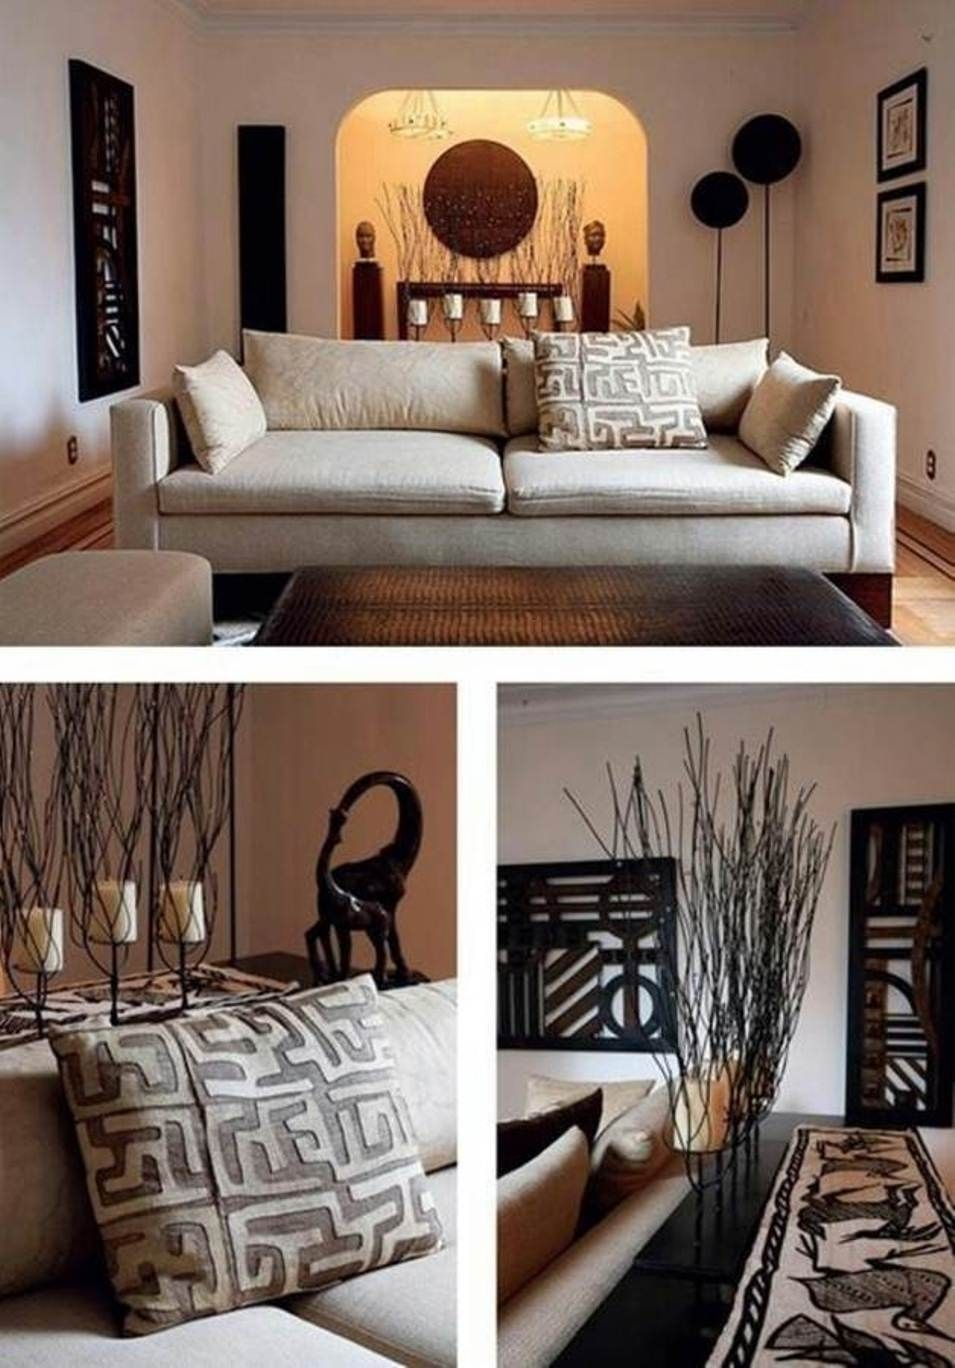 South African Decorating Ideas | Pinspired Interiors: Globally Regarding Most Up To Date African Wall Accents (Gallery 11 of 15)